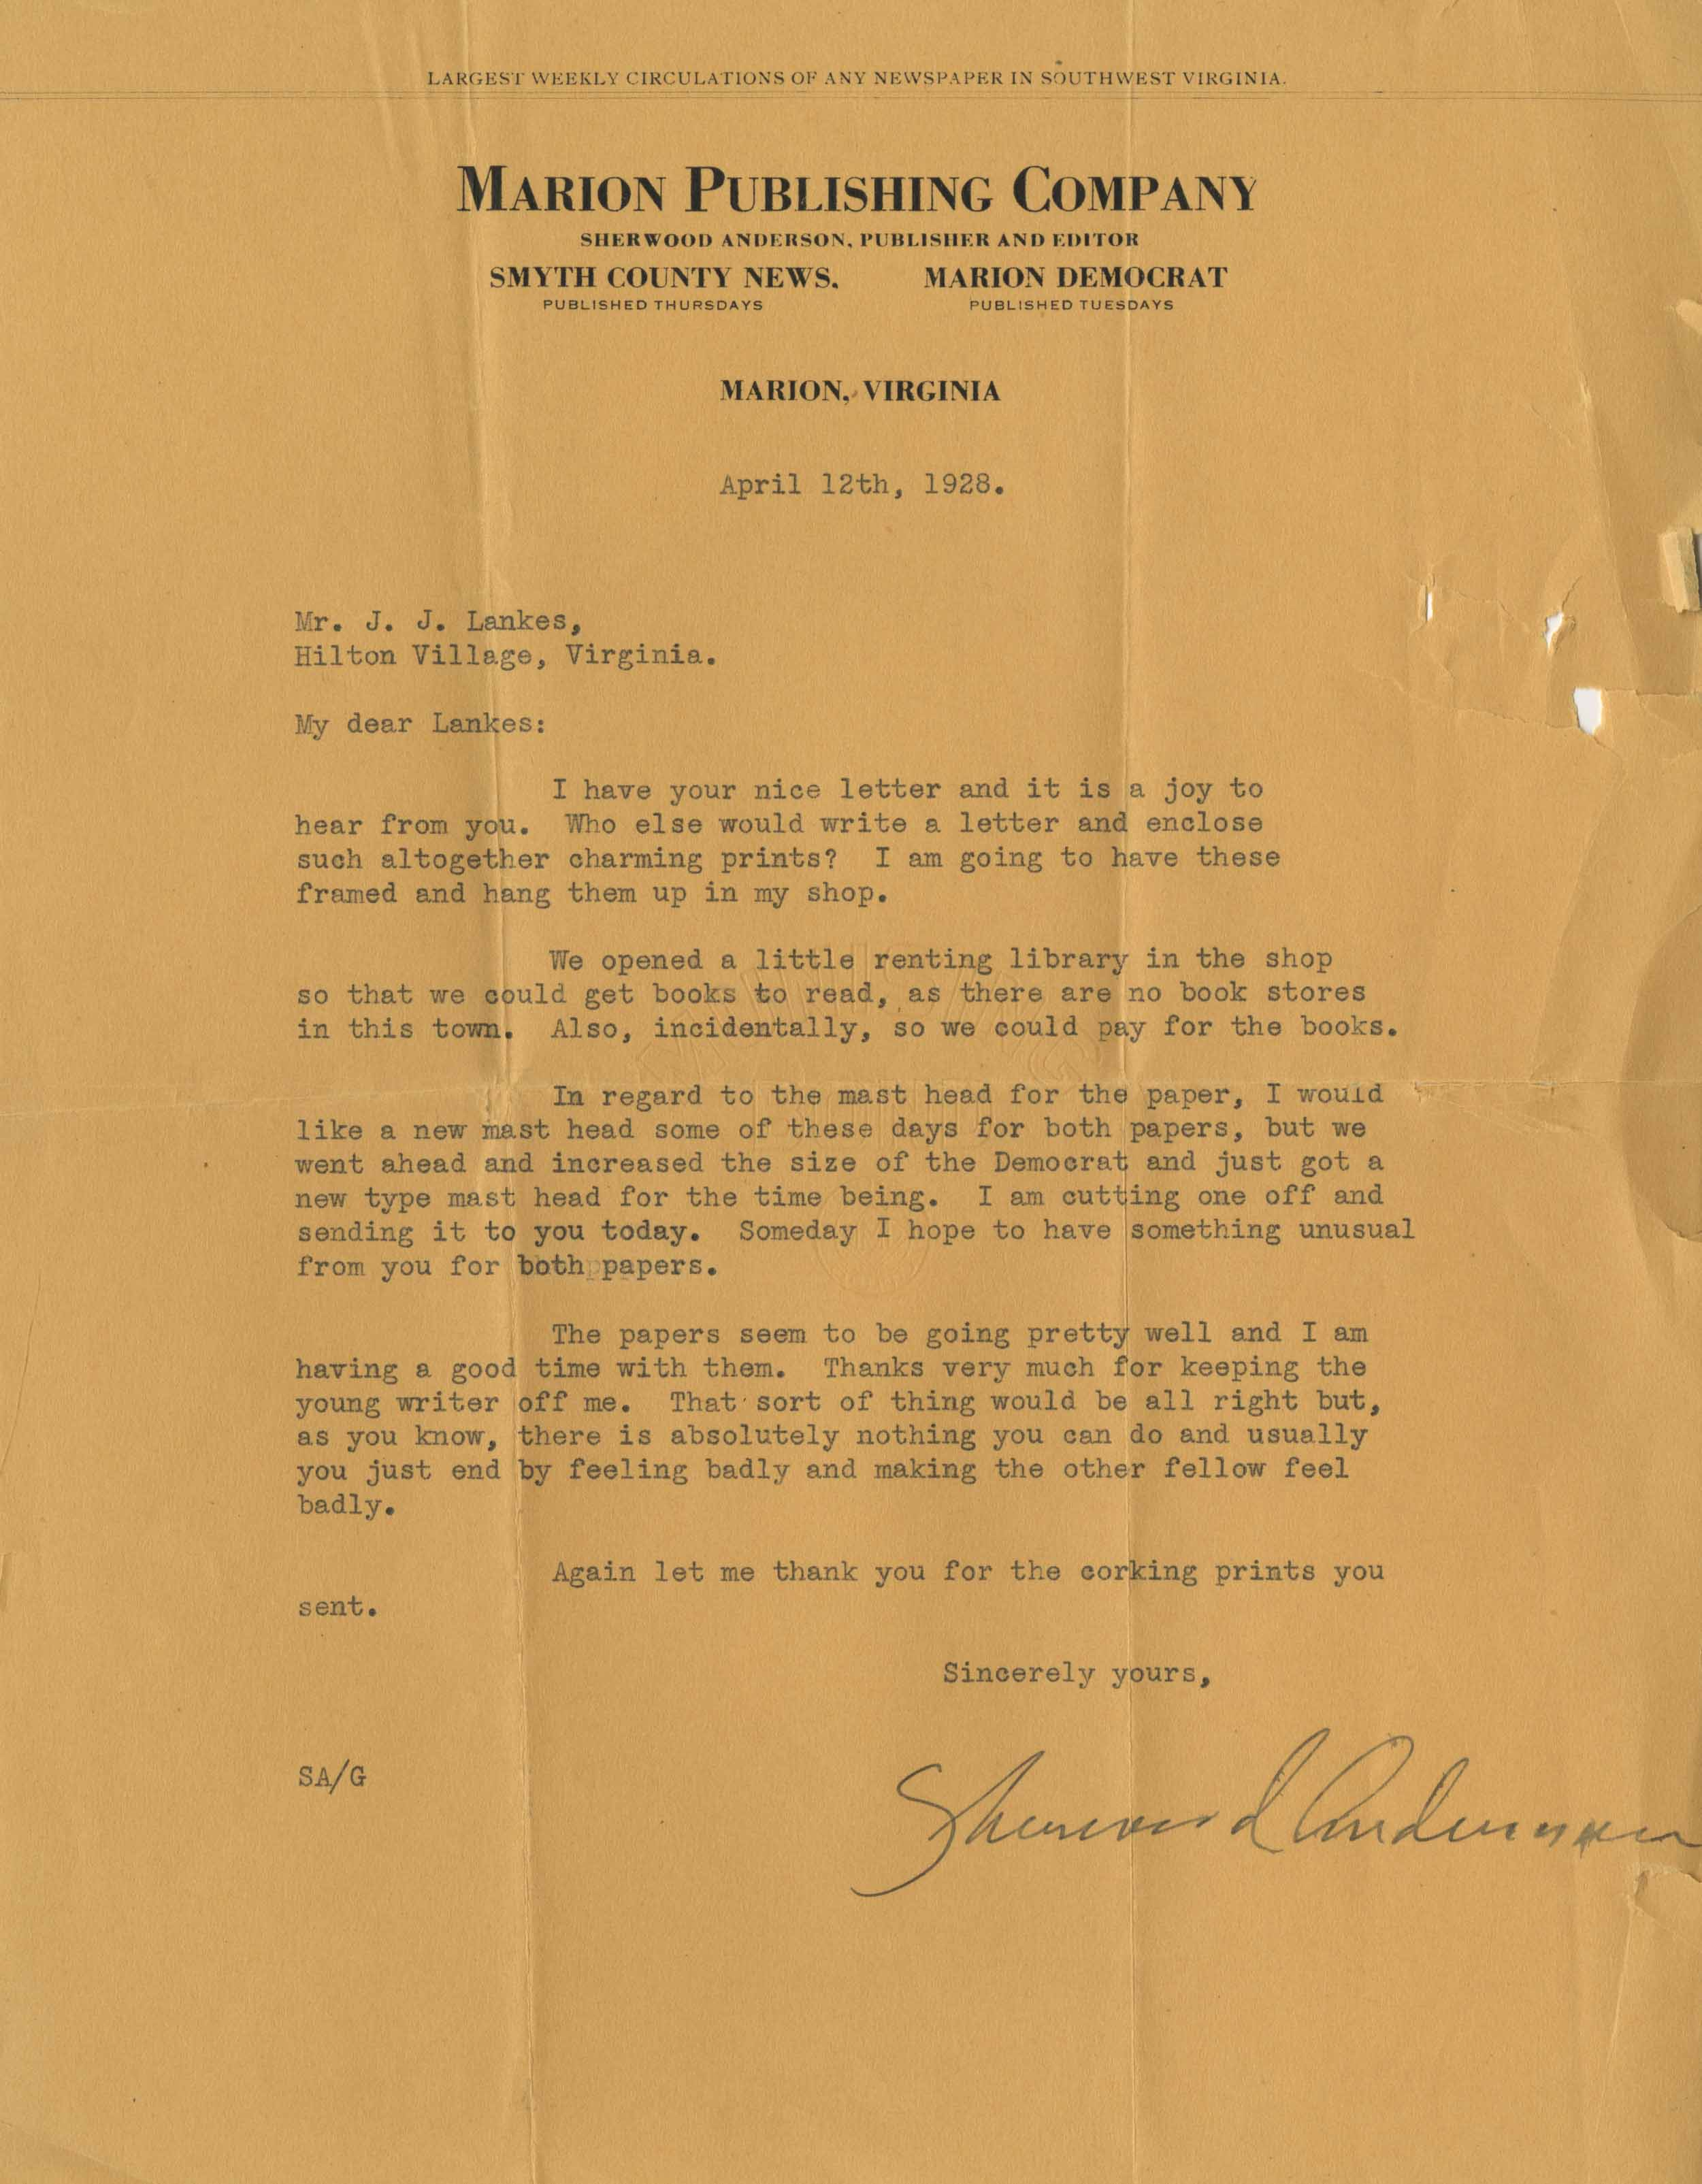 A 1928 letter from Anderson describing his opening a small library in Marion.